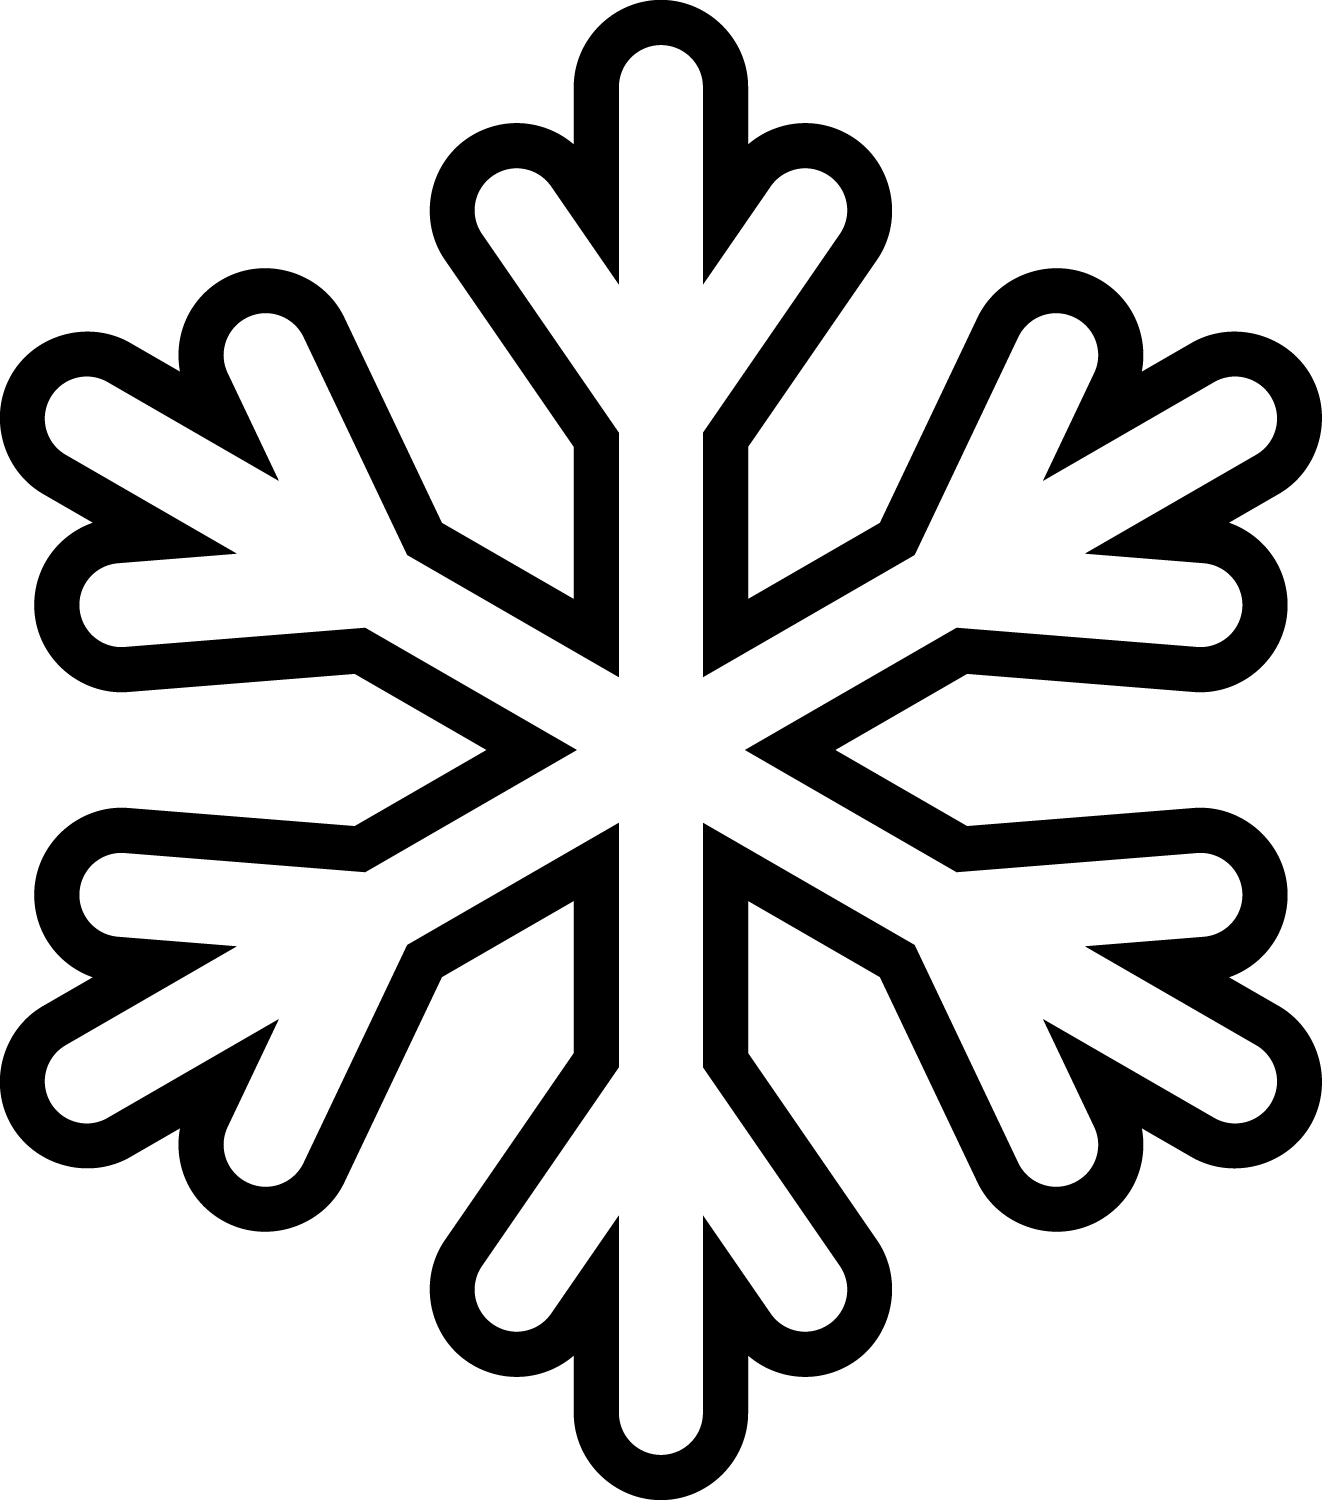 Snowflake clipart black and white vector